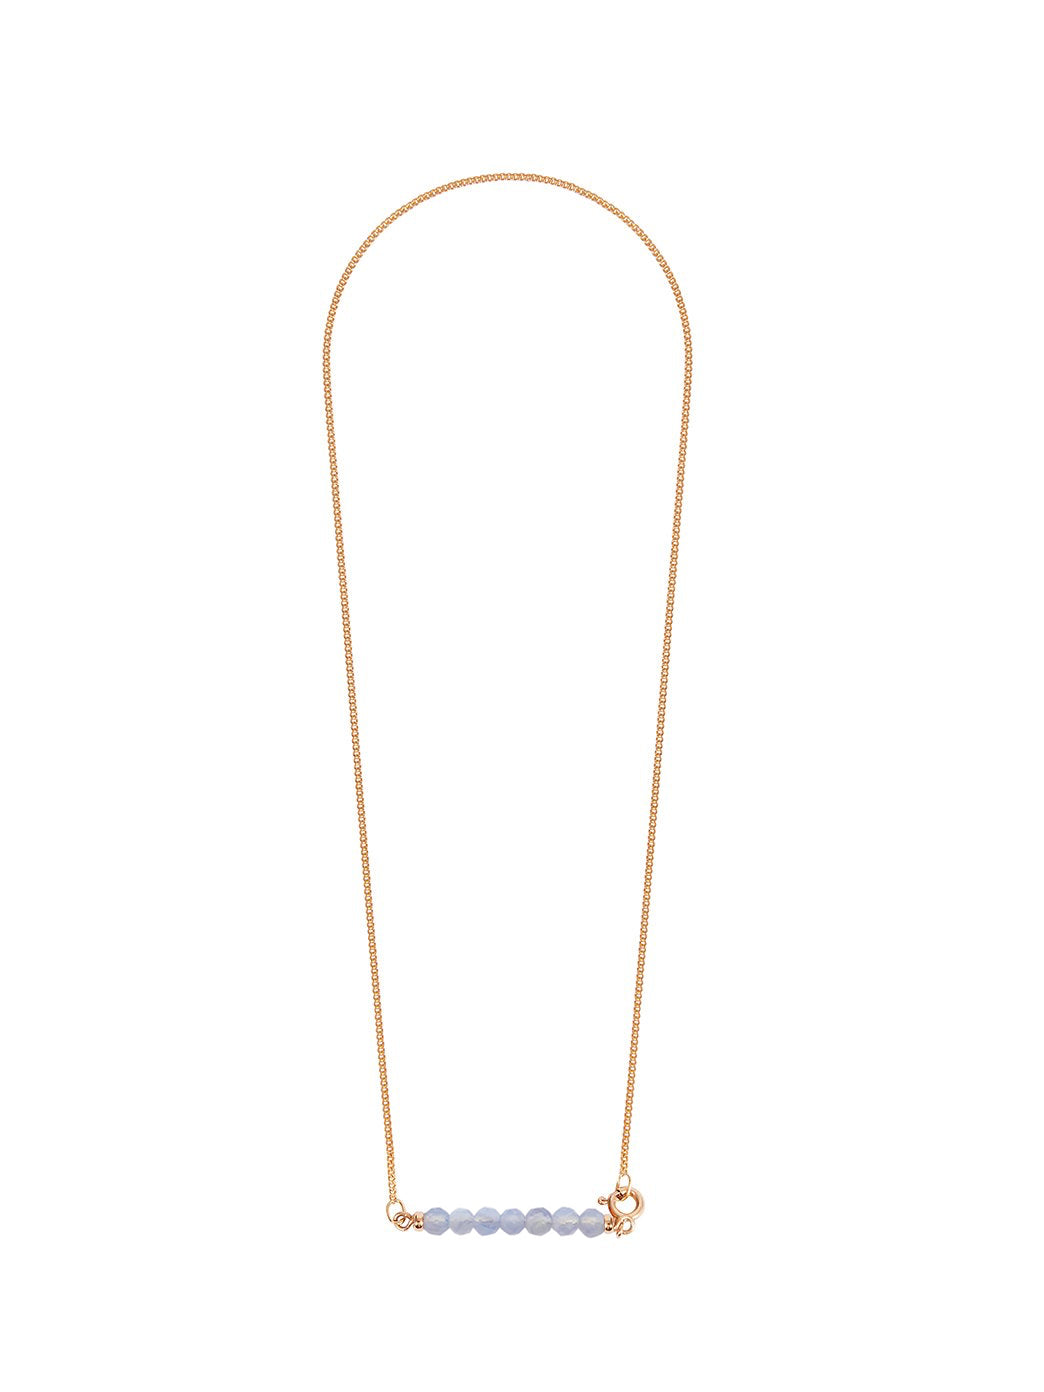 Fiorina Jewellery Gold Friendship Necklace Chalcedony